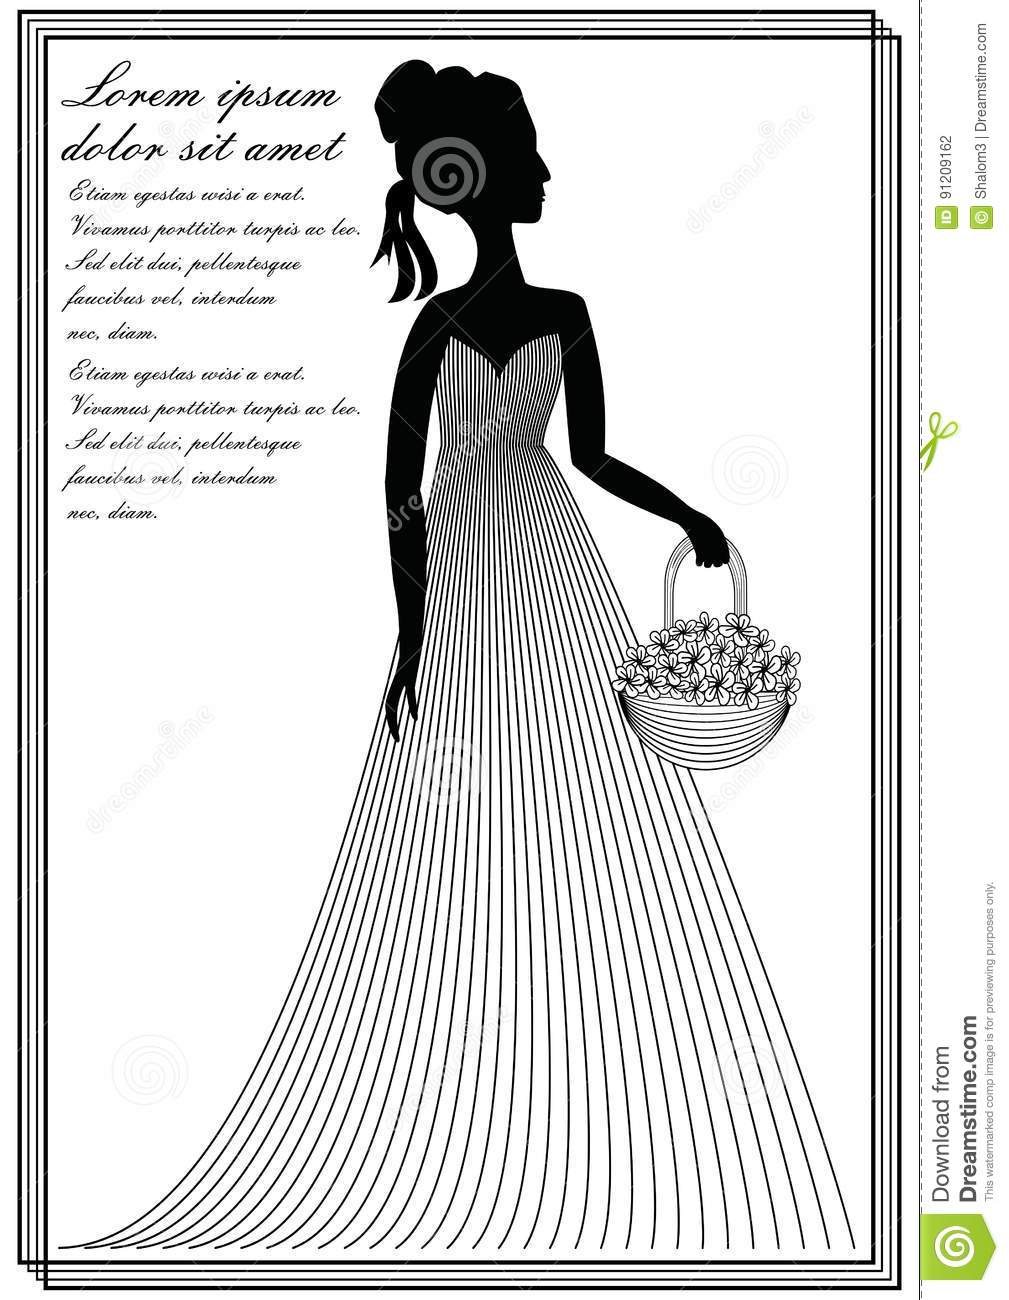 Flower Basket Line Drawing : Crinoline cartoons illustrations vector stock images